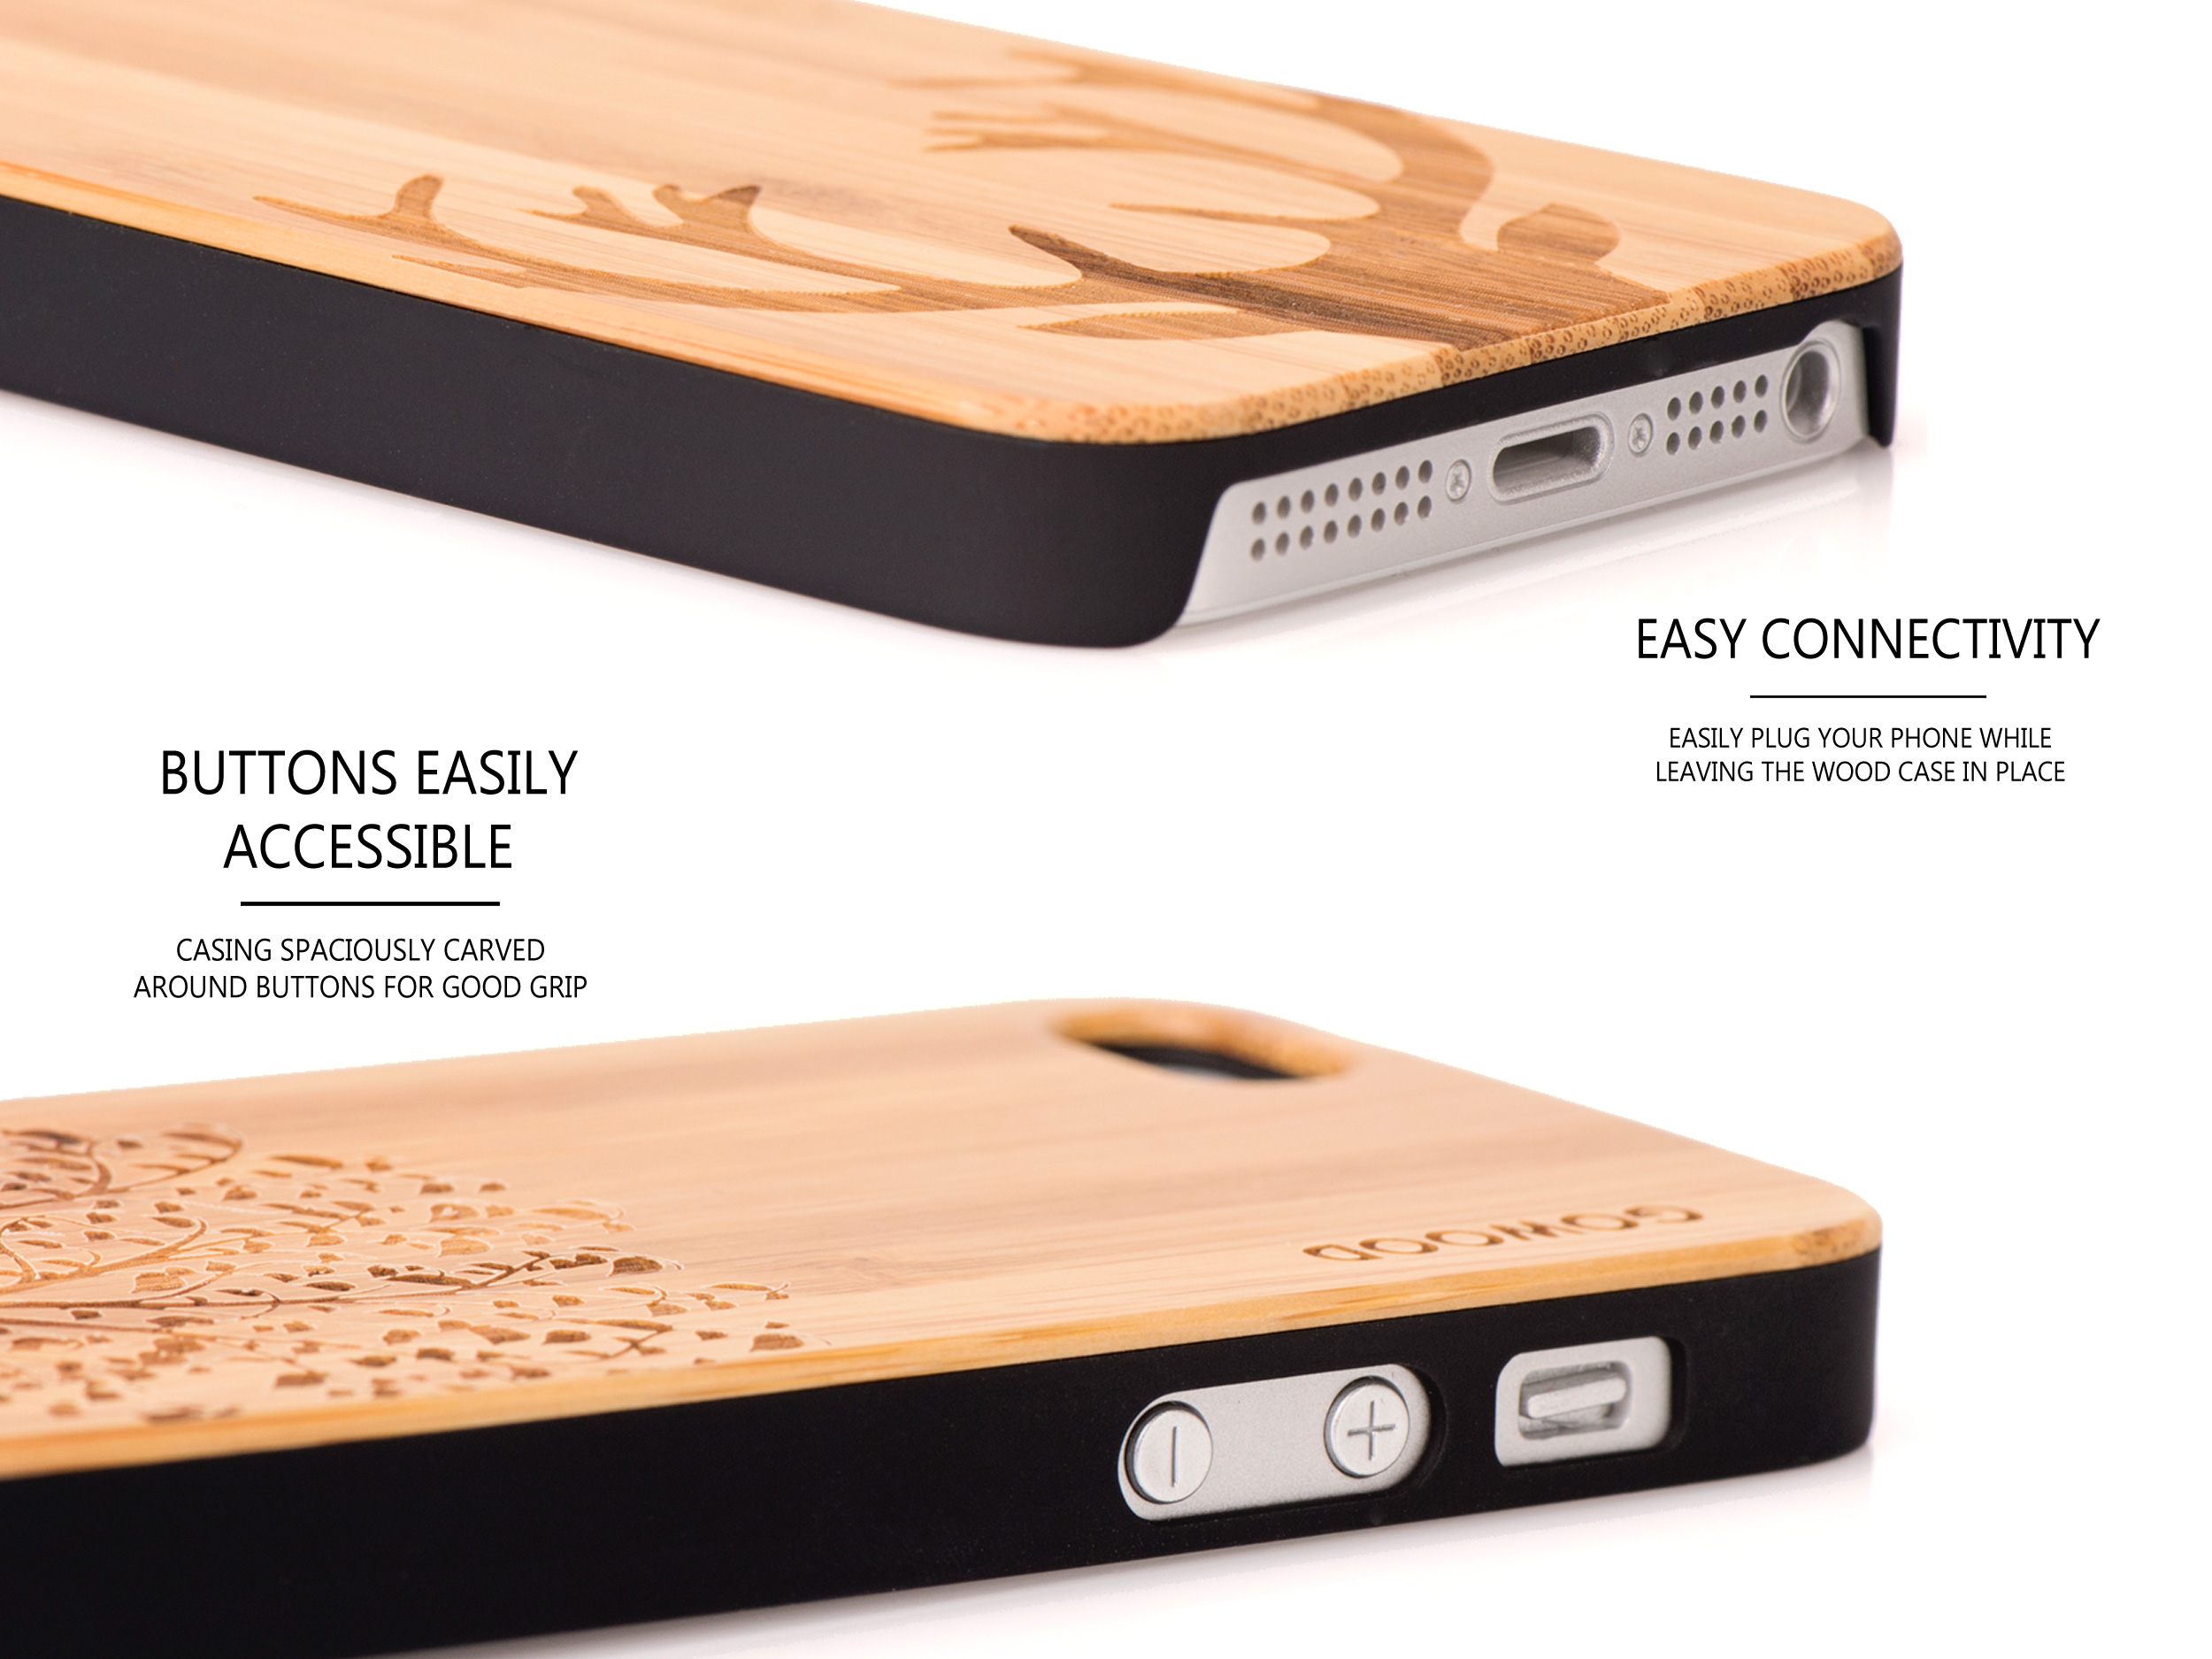 iPhone5 wood case buttons